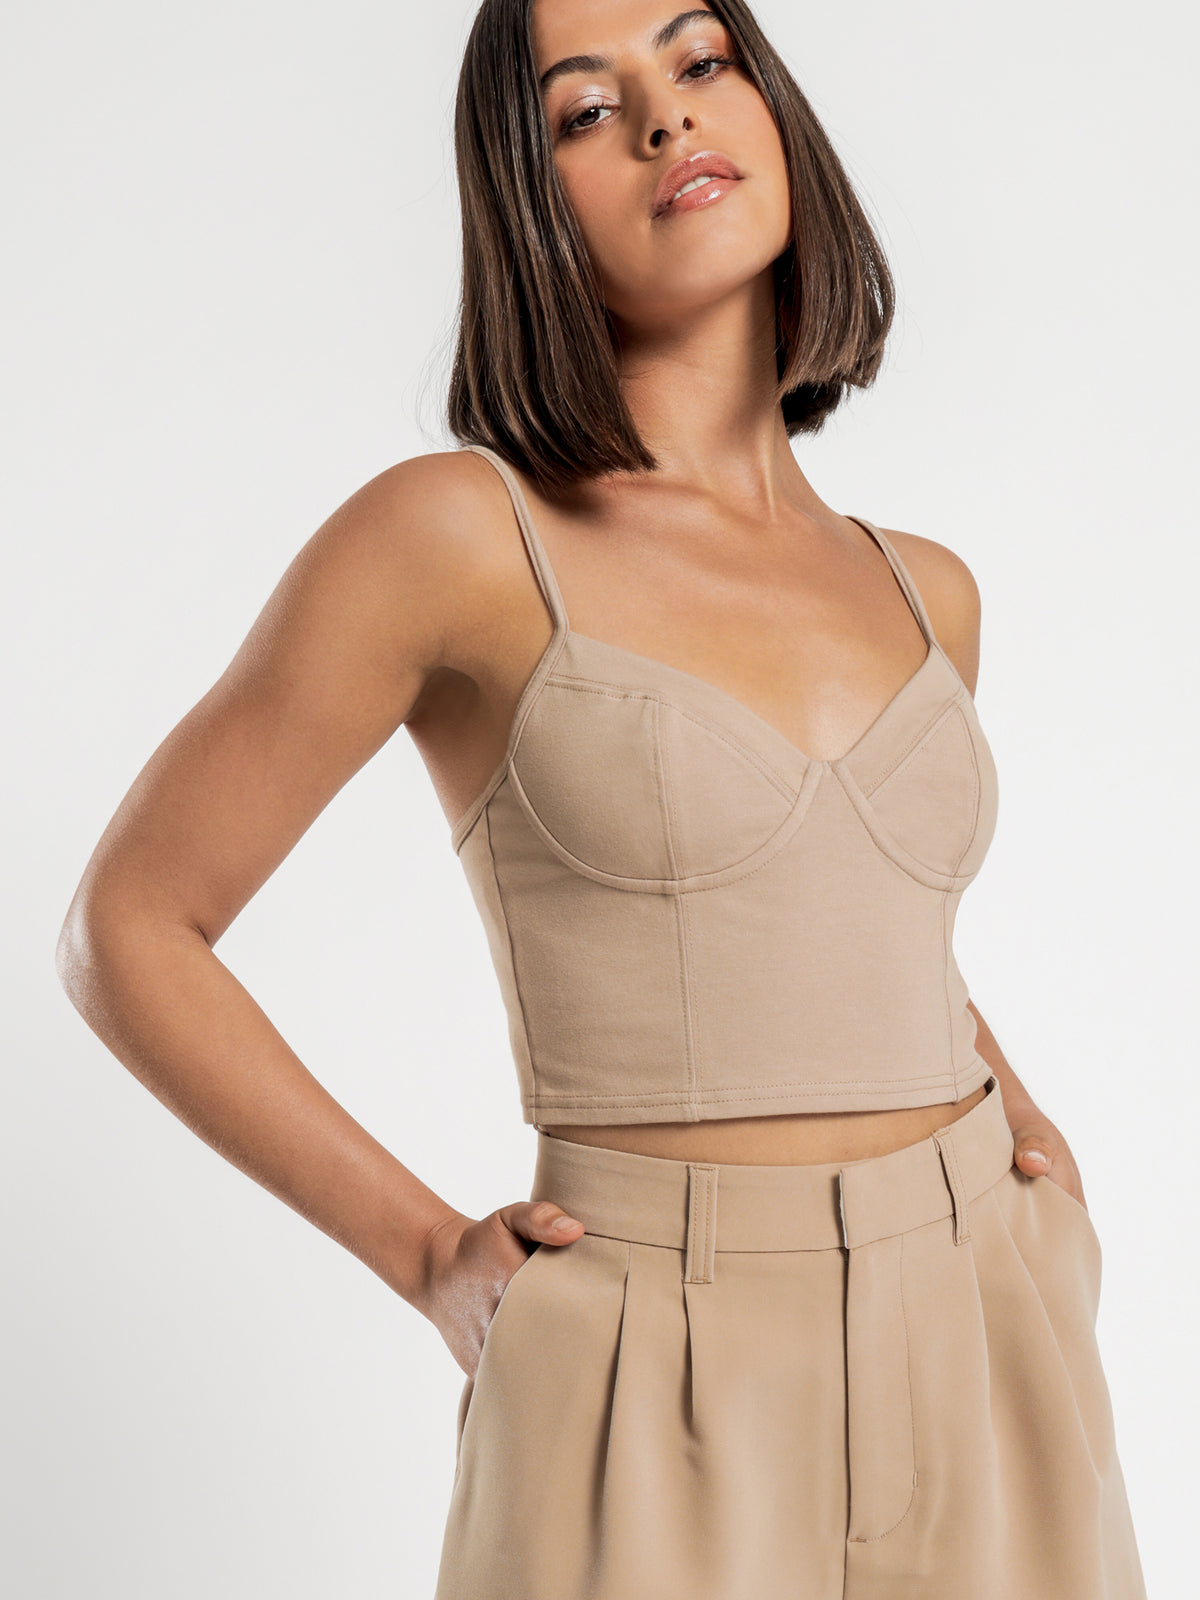 Muse Jersey Bustier Top in Tan